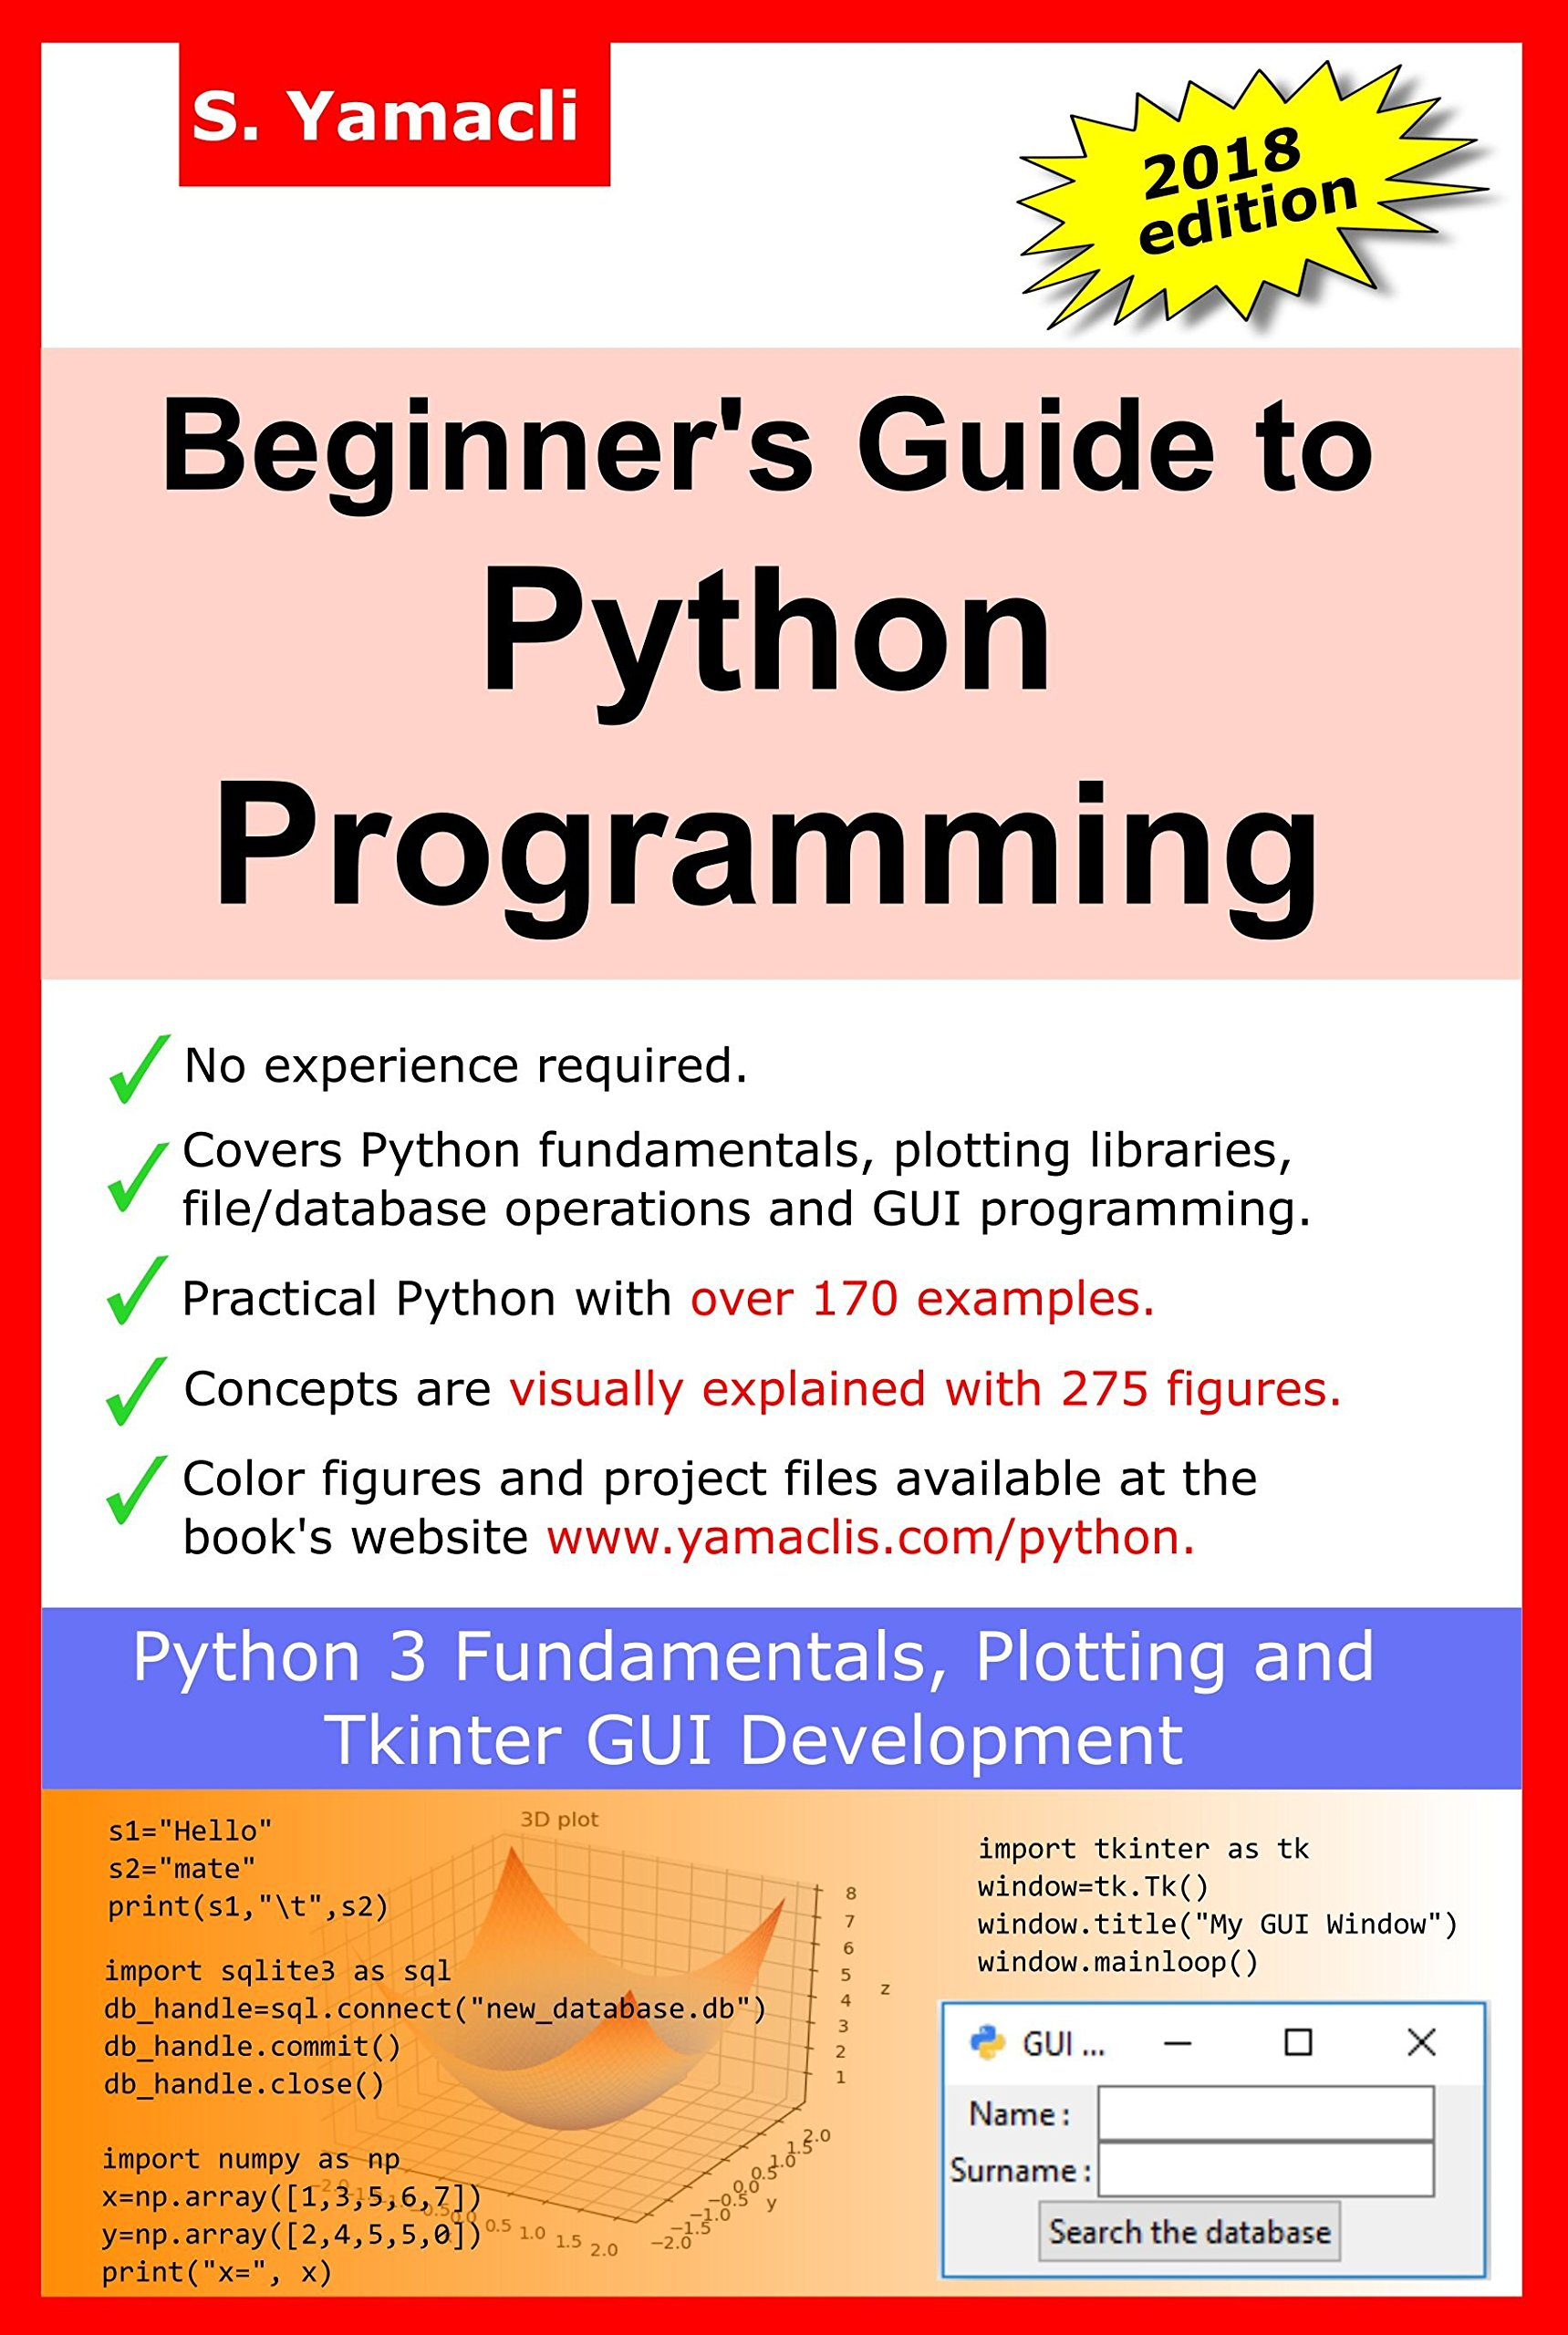 Beginner's Guide to Python Programming: Learn Python 3 Fundamentals, Plotting and Tkinter GUI Development Easily